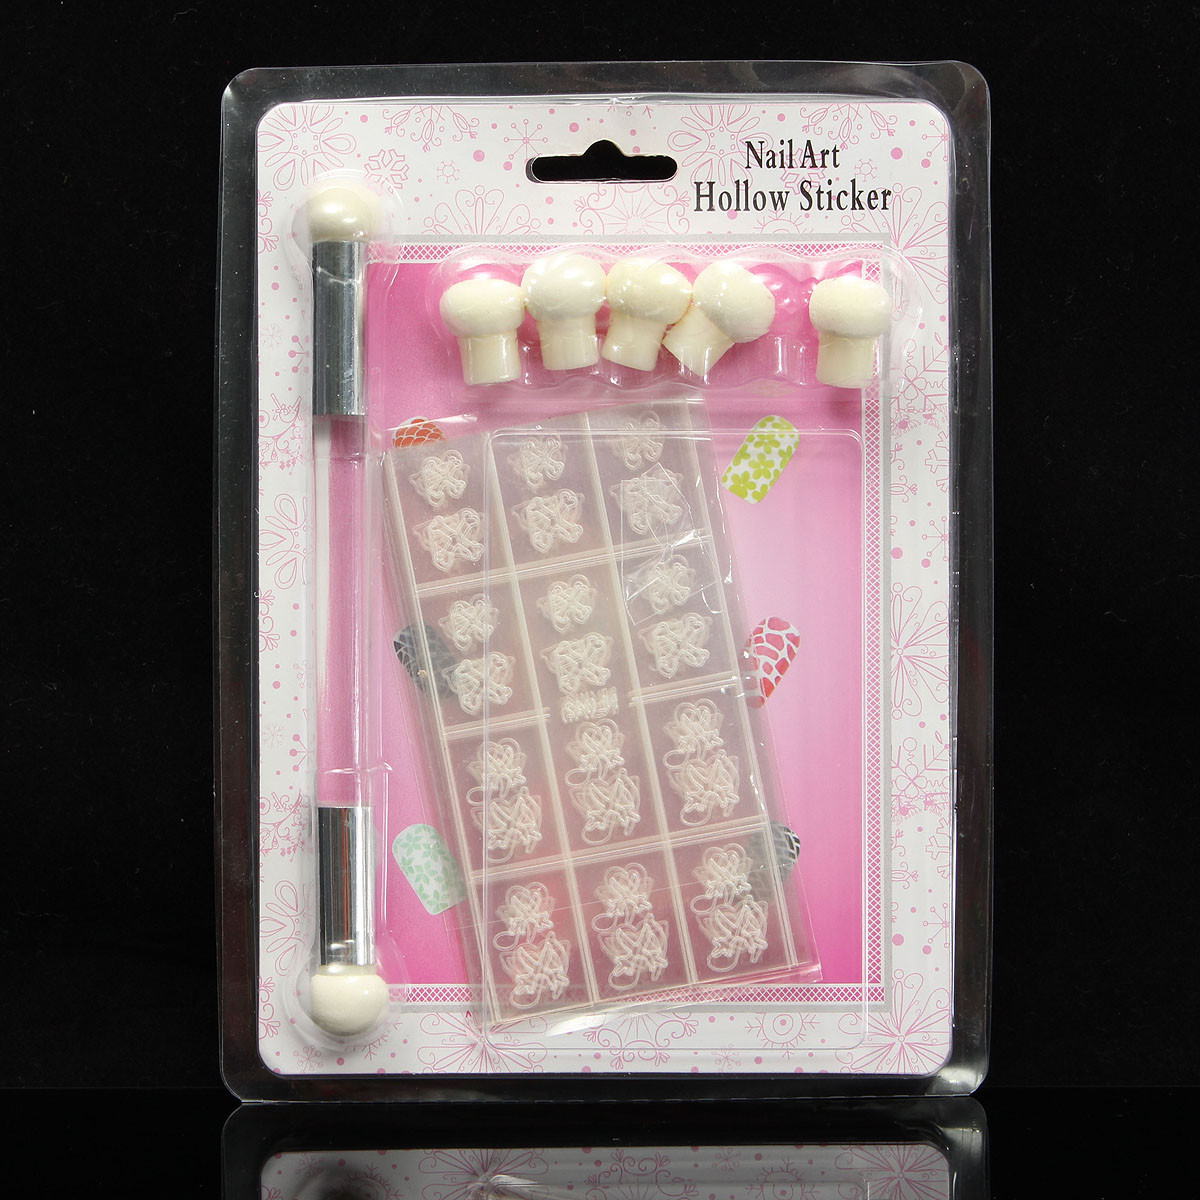 Hollow Sticker Double Ended UV Gel Stamping Transfer Brush Pen Sponge Nail Art Set Manicure Tool